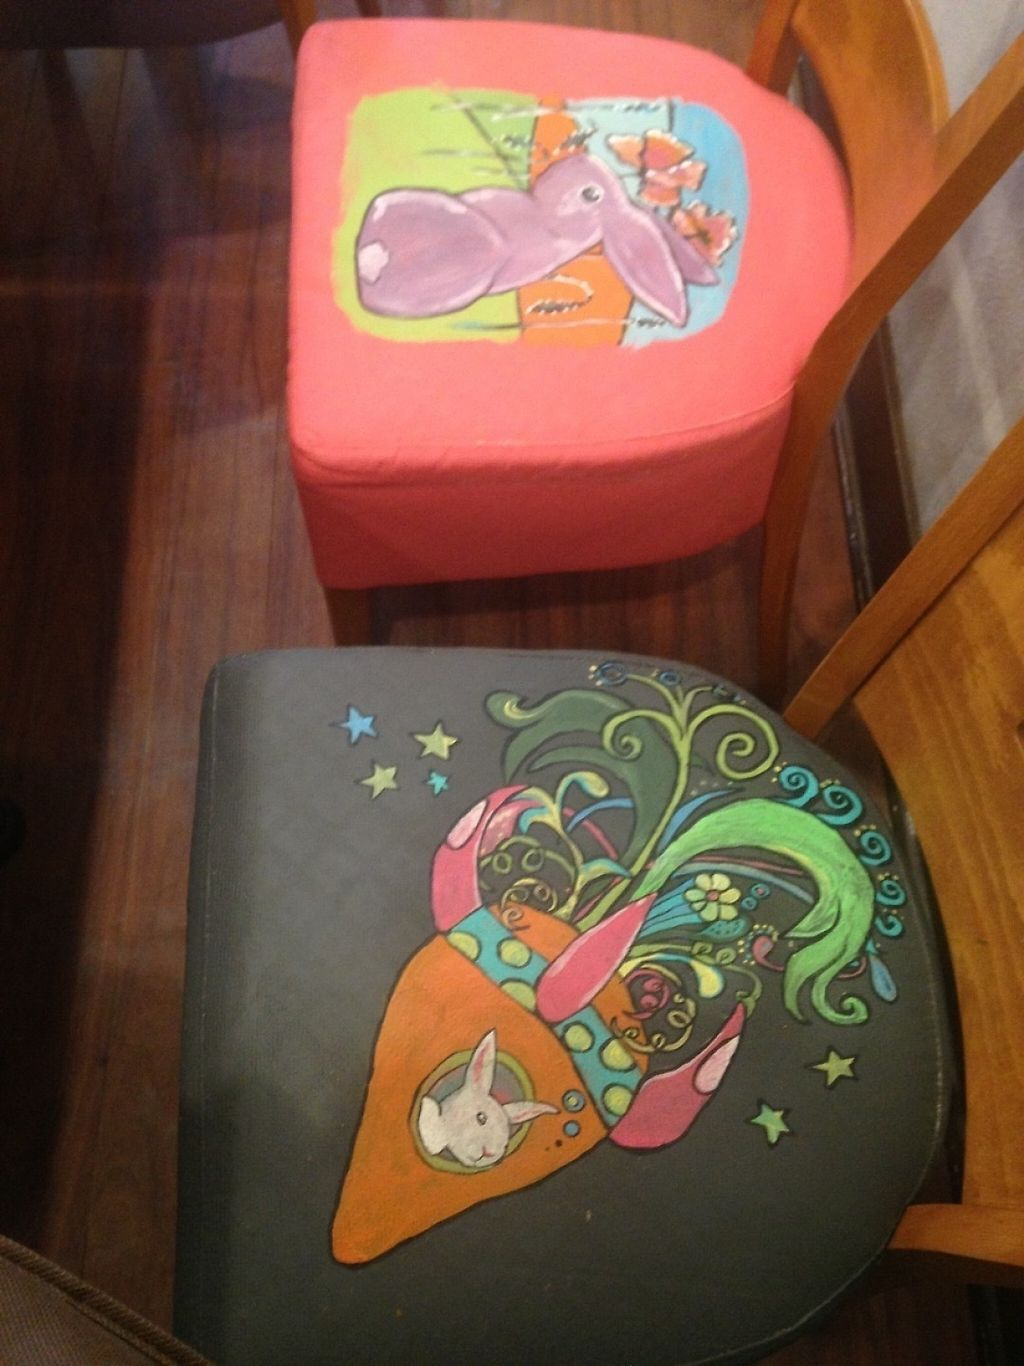 """Photo of The Clever Rabbit  by <a href=""""/members/profile/Mon7que"""">Mon7que</a> <br/>Each chair seat cover has a uniquely painted rabbit design by the owner Tessa! Lots of other beautiful artwork displayed in the restaurant also!  <br/> November 29, 2016  - <a href='/contact/abuse/image/30845/195638'>Report</a>"""